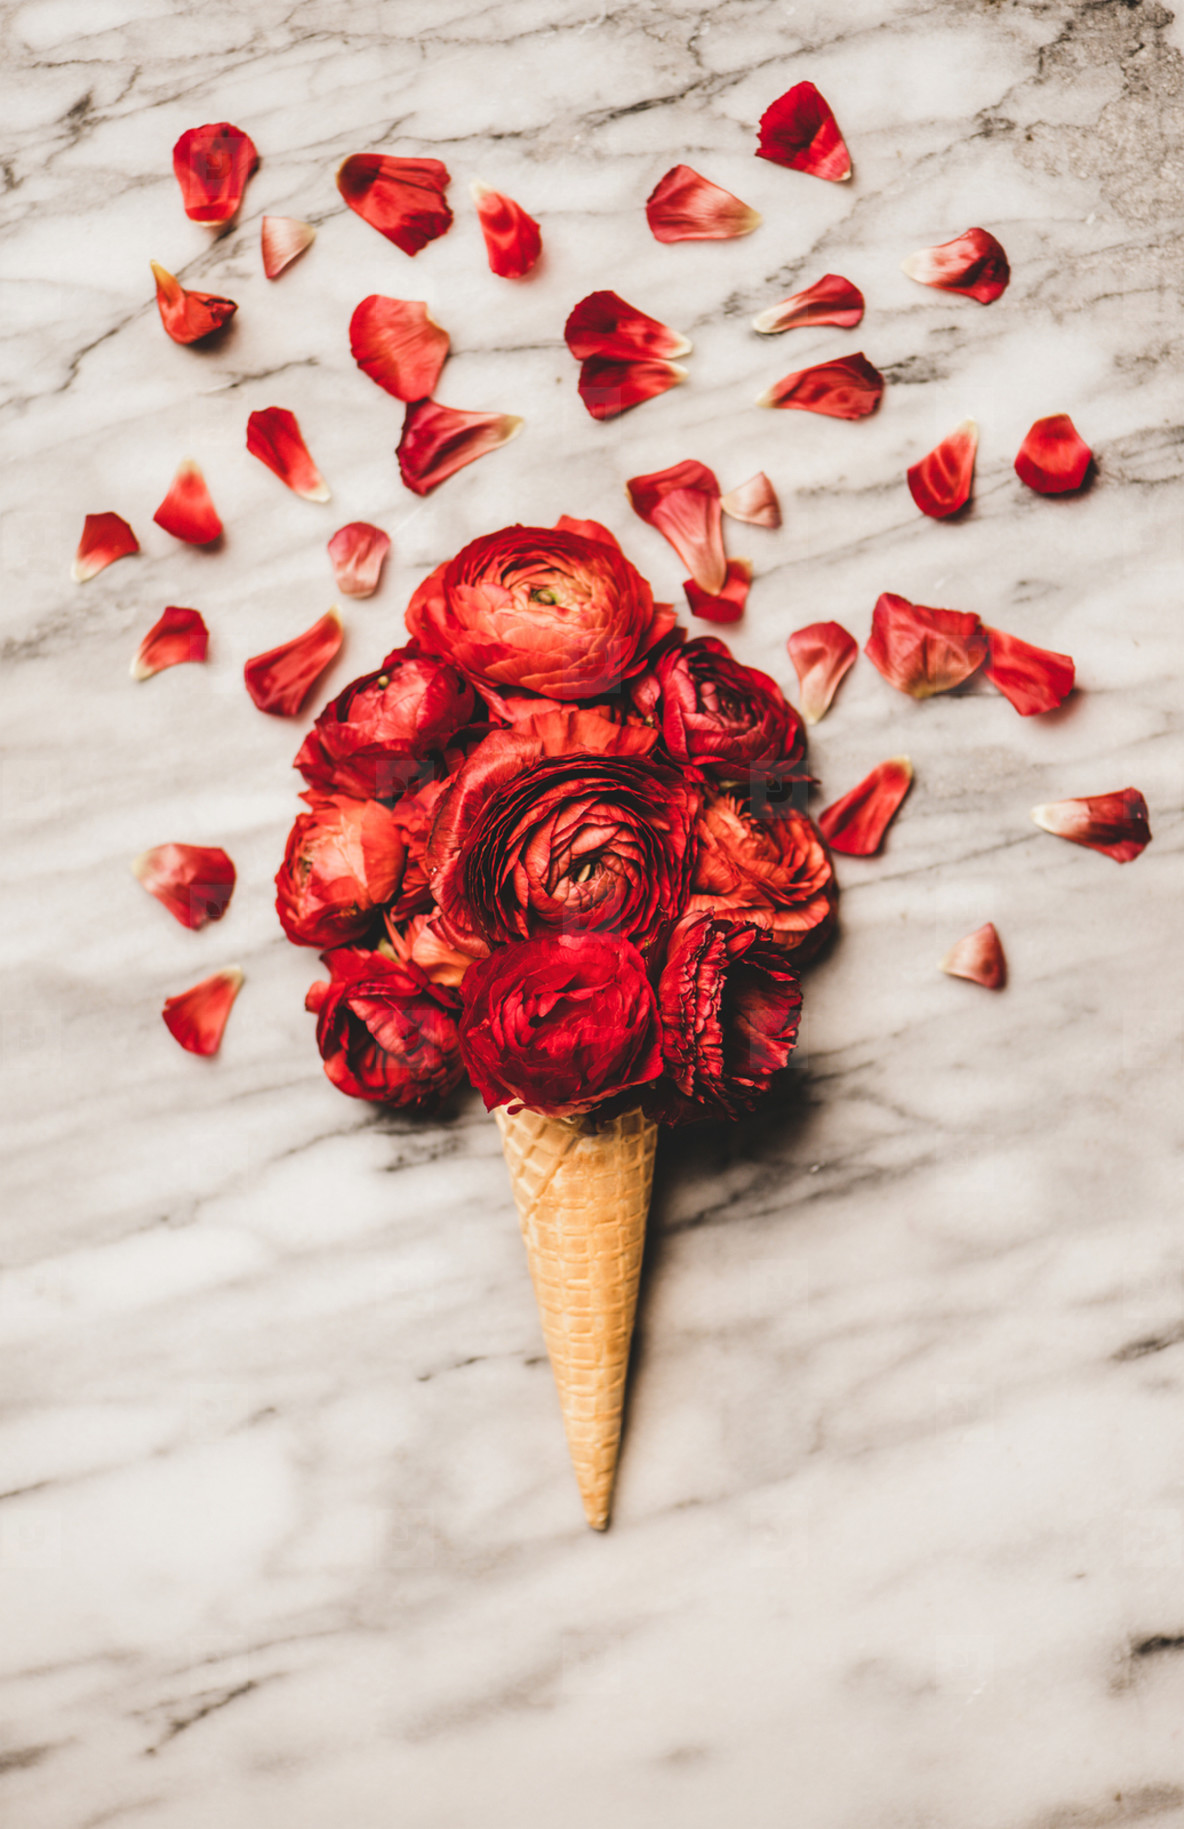 Waffle cone with scoop of ranunculus flowers over marble background